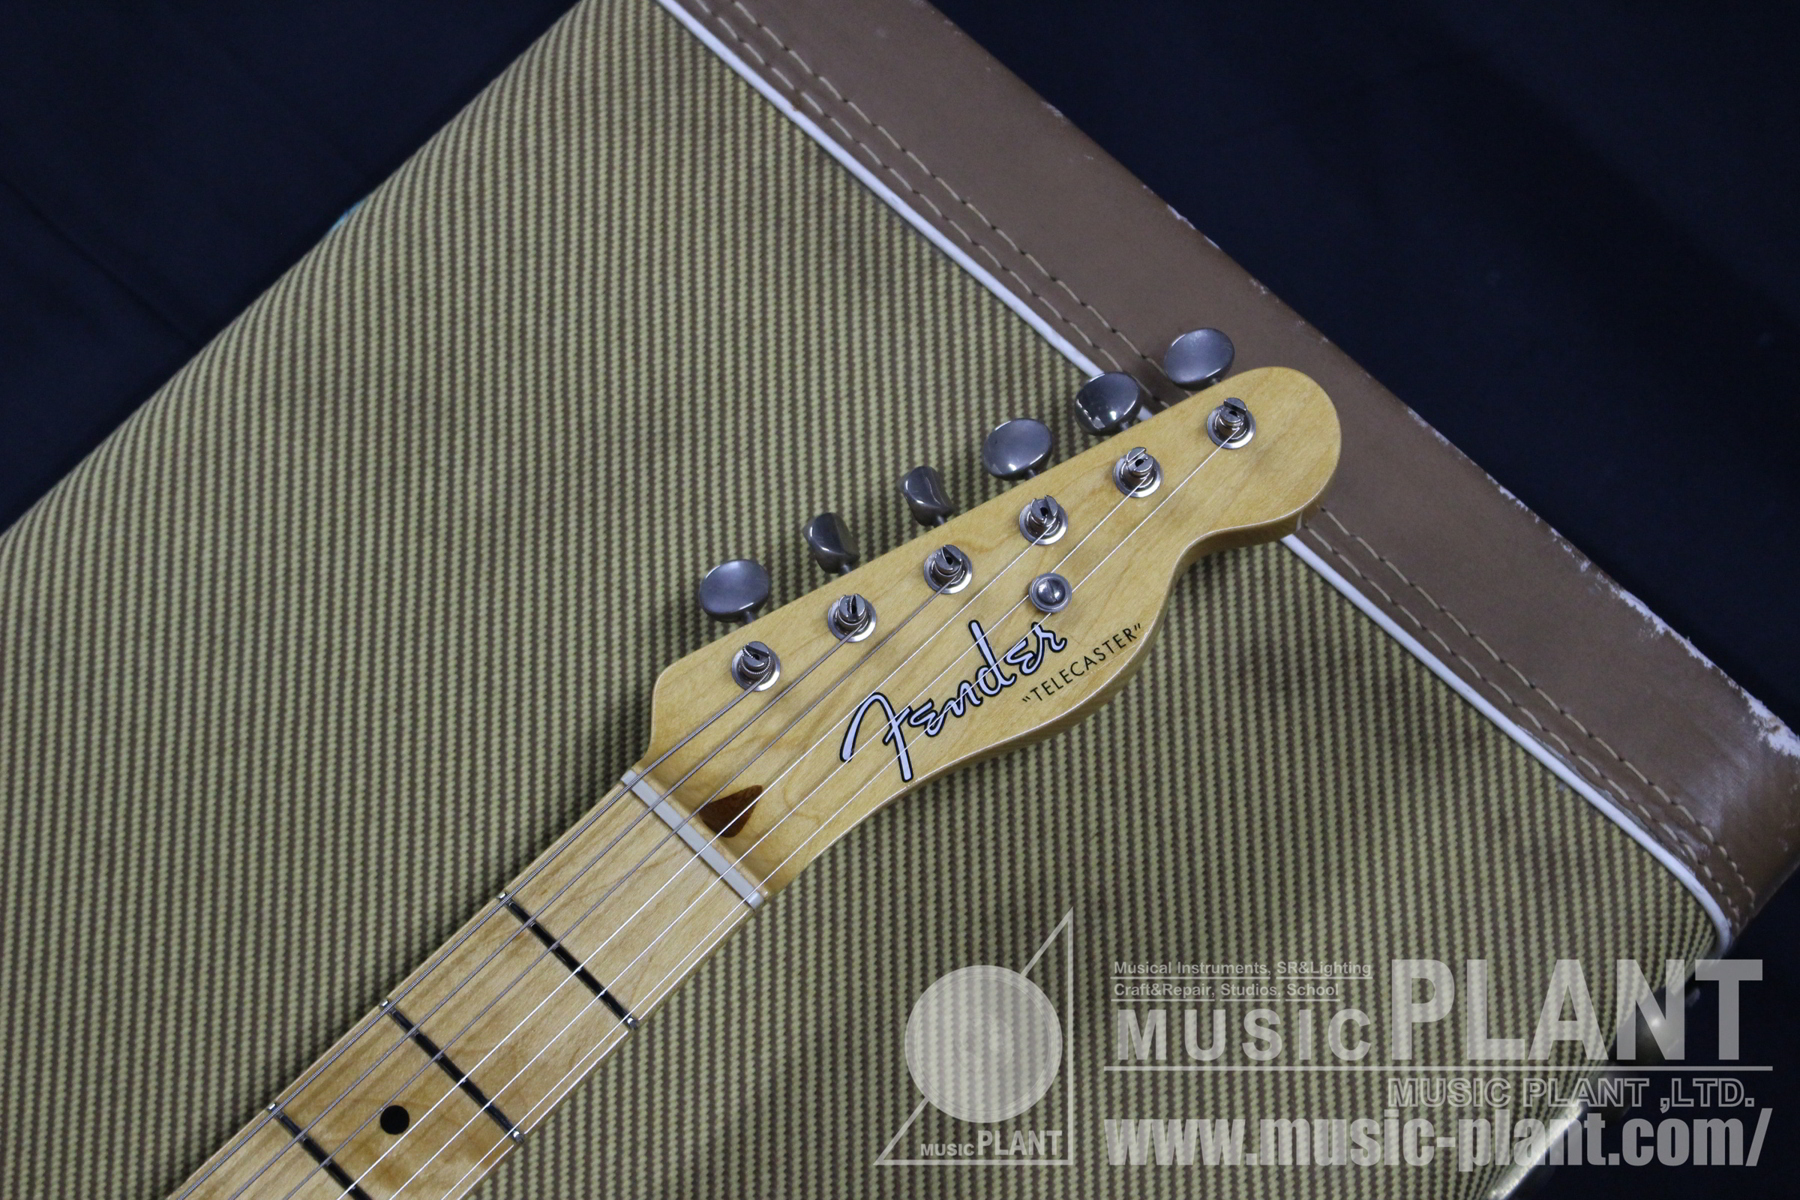 52' Telecaster Naturalヘッド画像